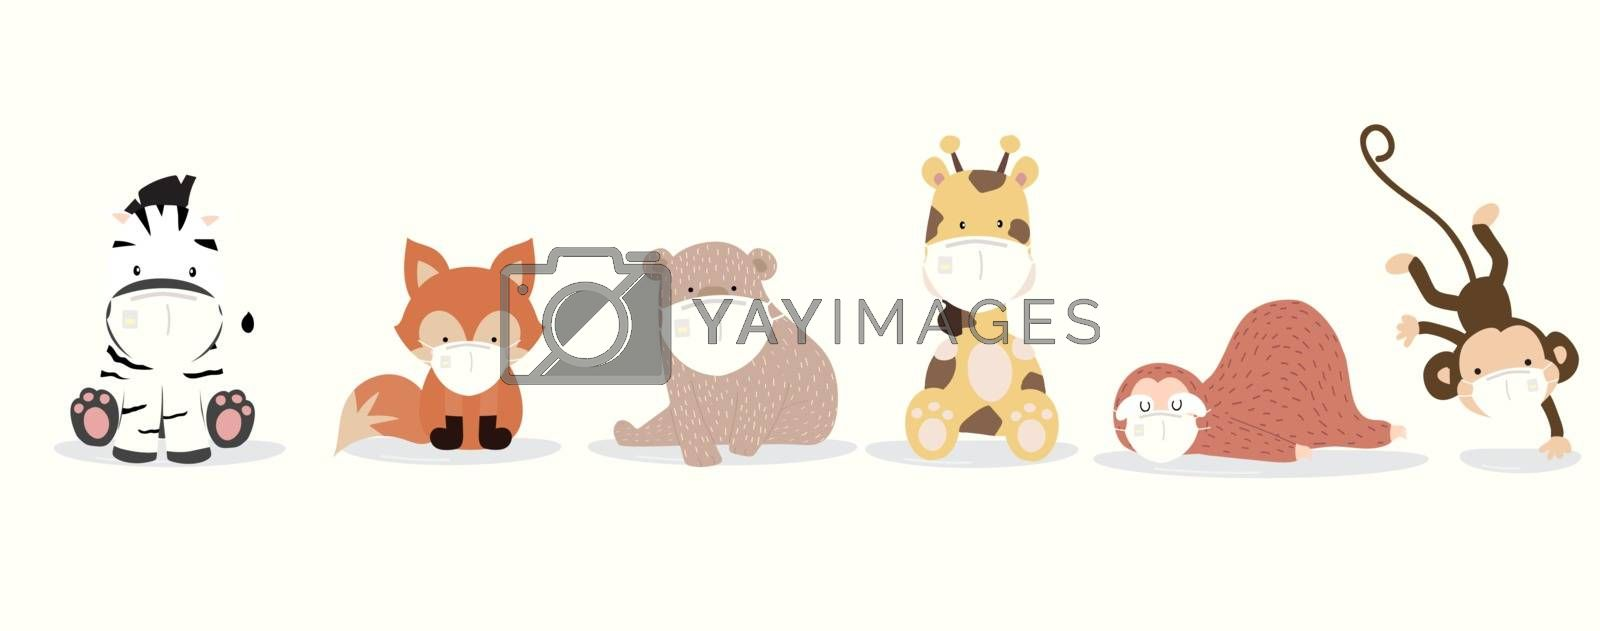 Cute animal object collection with  sloth,giraffe,fox,zebra,monkey,bear wear mask.Vector illustration for prevention the spread of bacteria,coronviruses